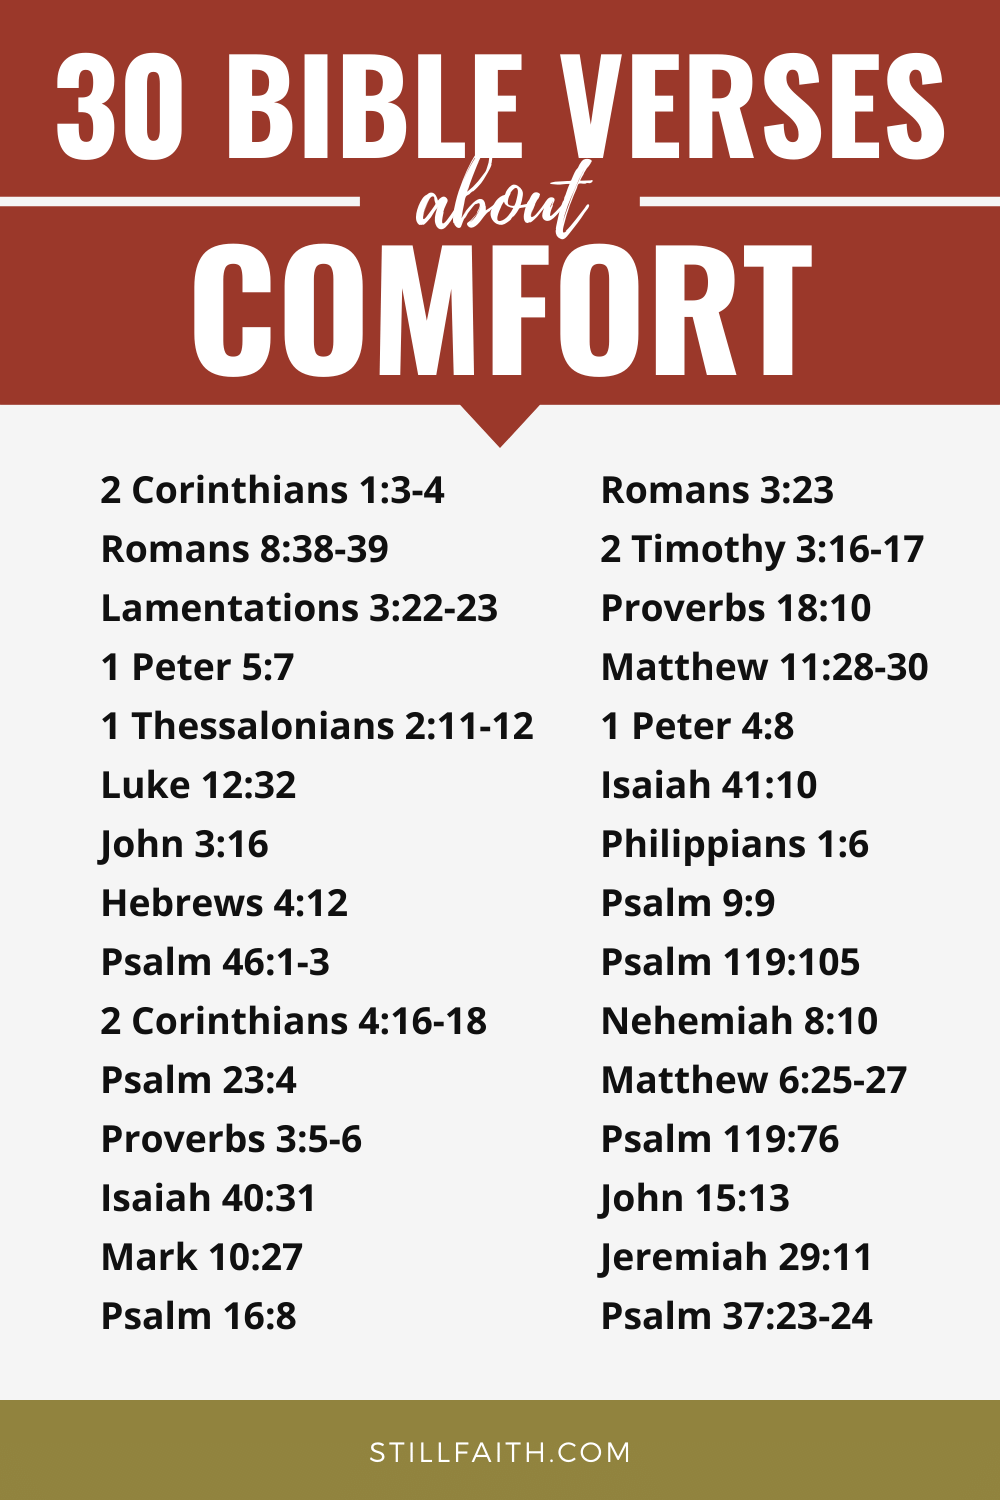 281 Bible Verses about Comfort